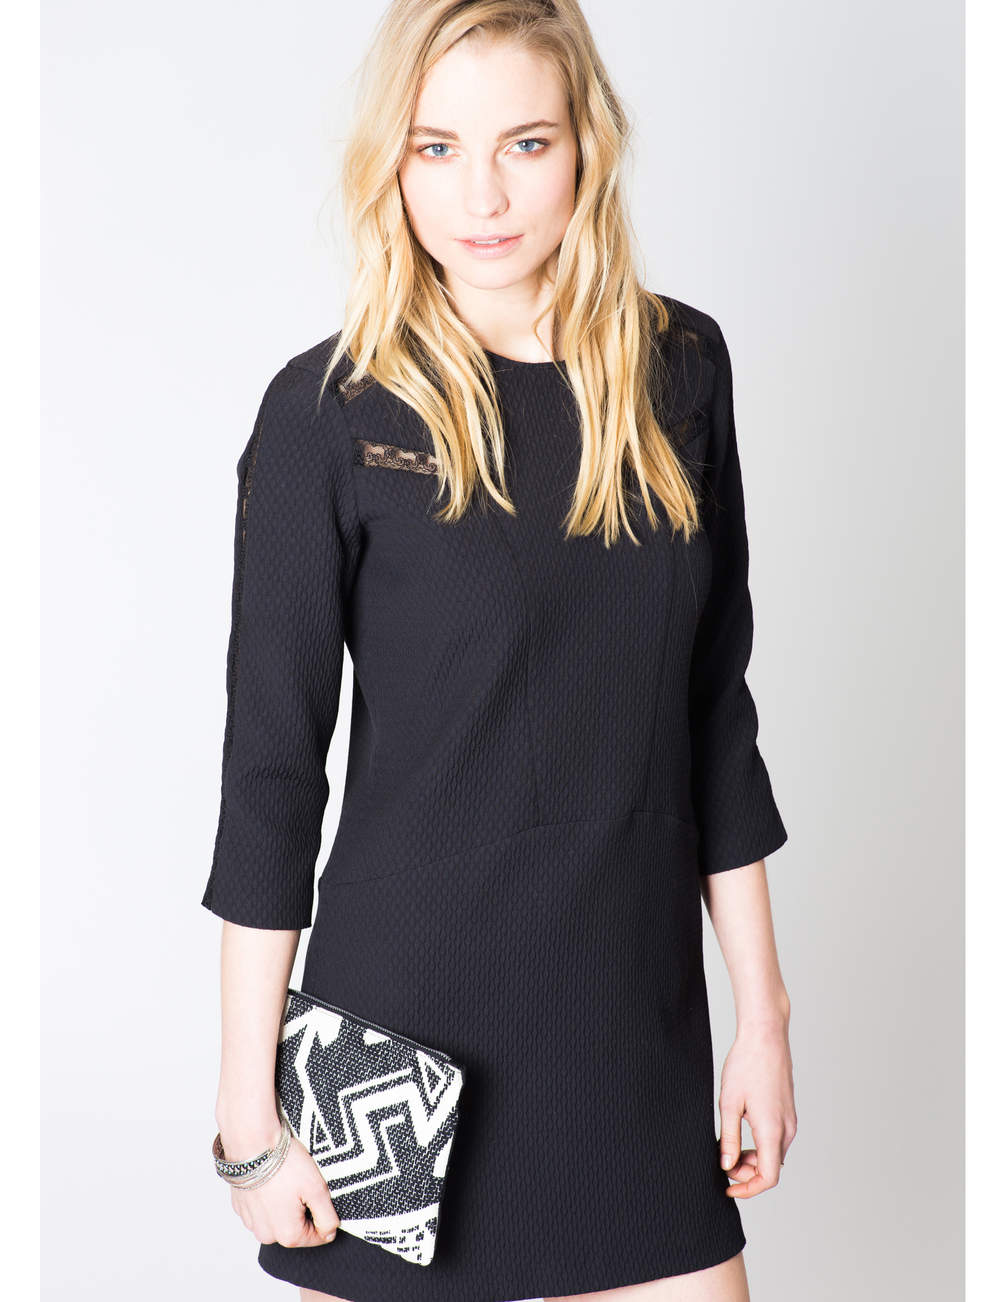 Robe noire : casual chic